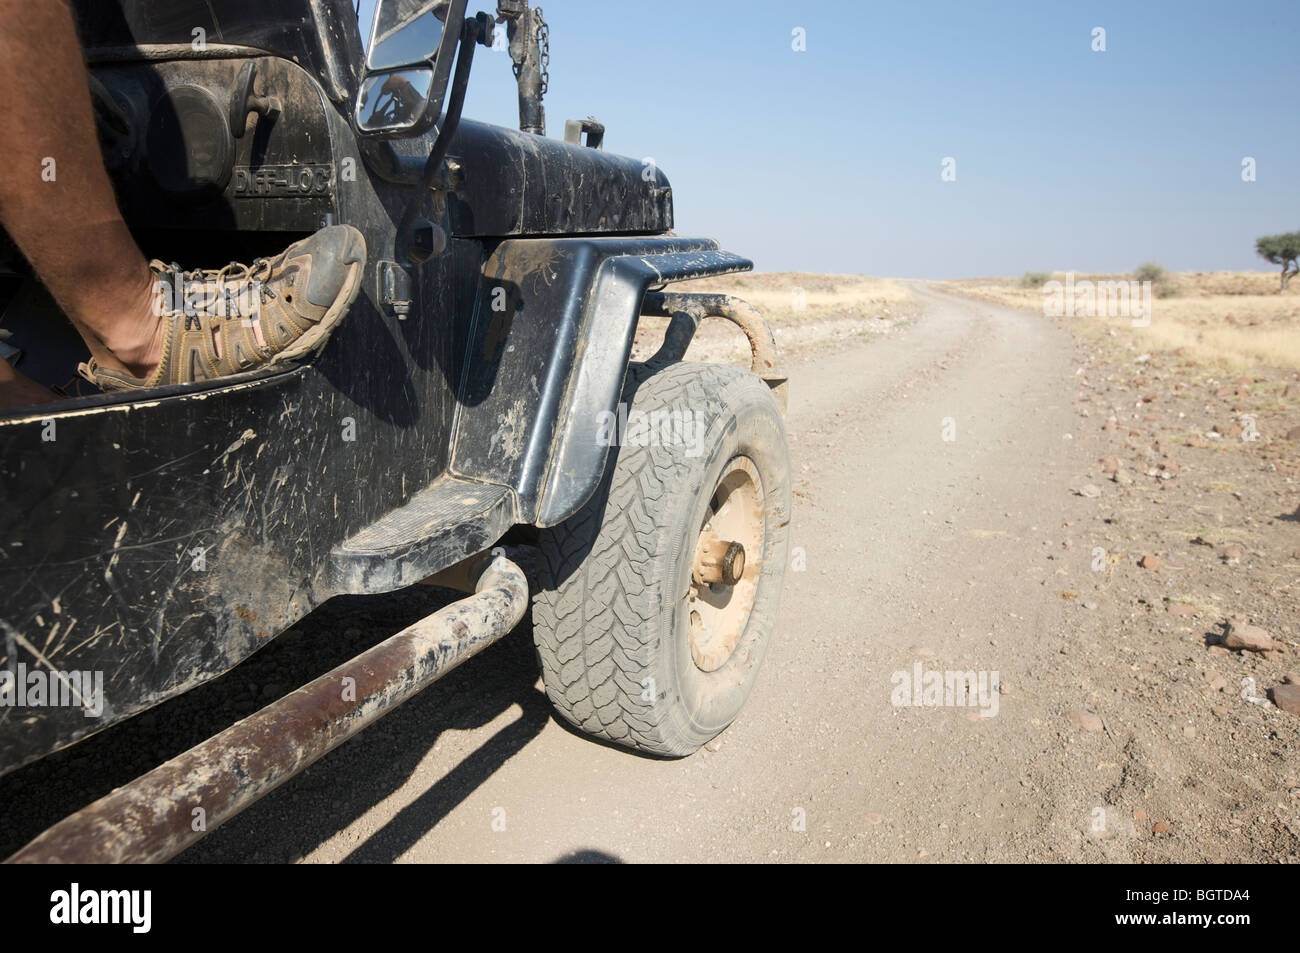 Low angle view of side of motor vehicle with drivers foot resting on the frame work, Marienflusstal area, Kaokoland, - Stock Image